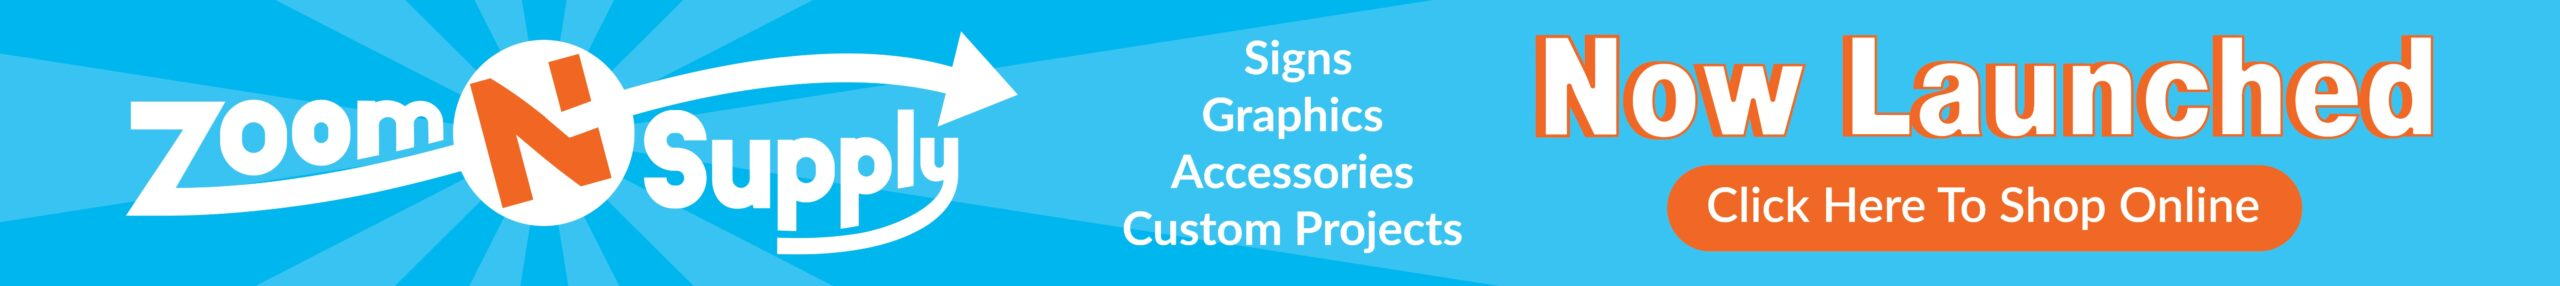 Click Here to Shop Online Banner-01